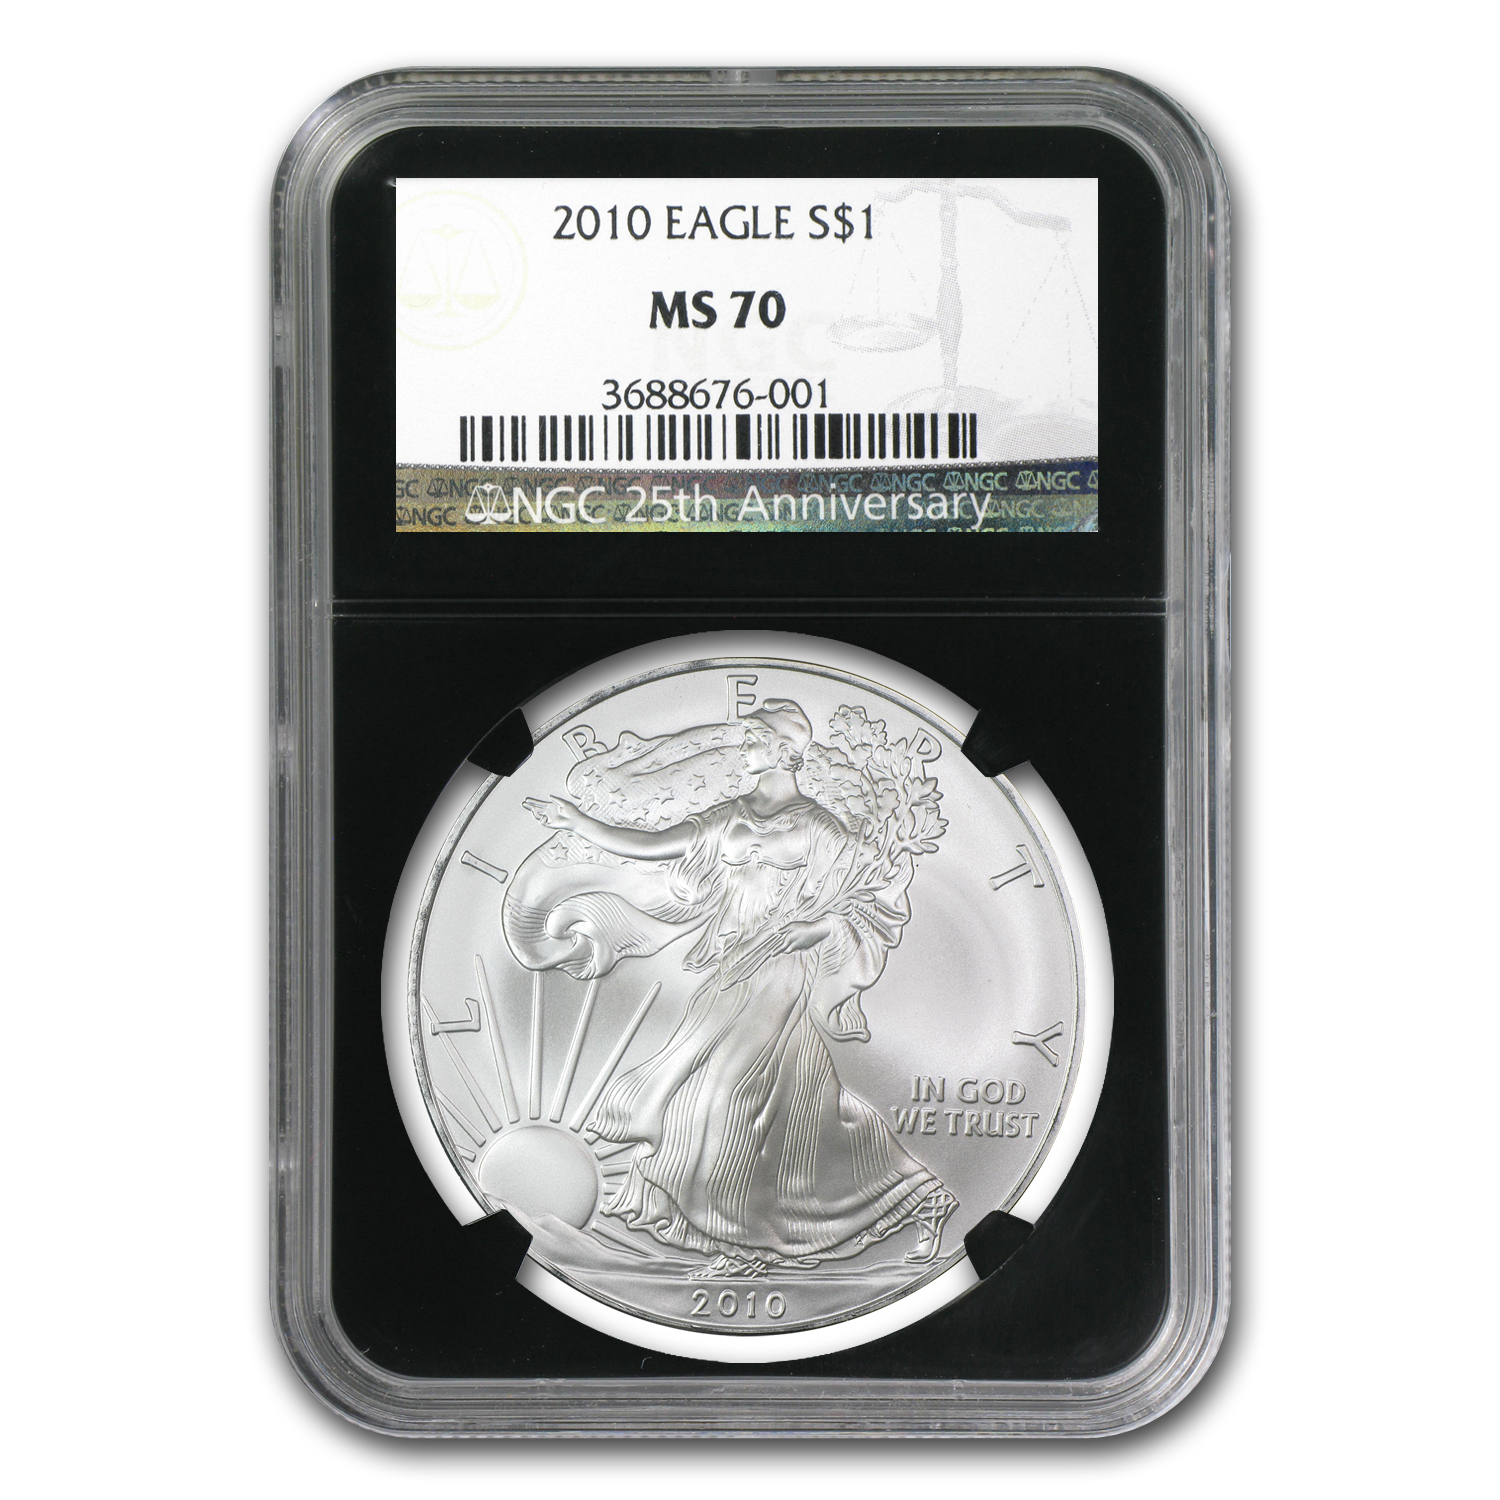 2010 Silver American Eagle - MS-70 NGC - Retro Black Insert